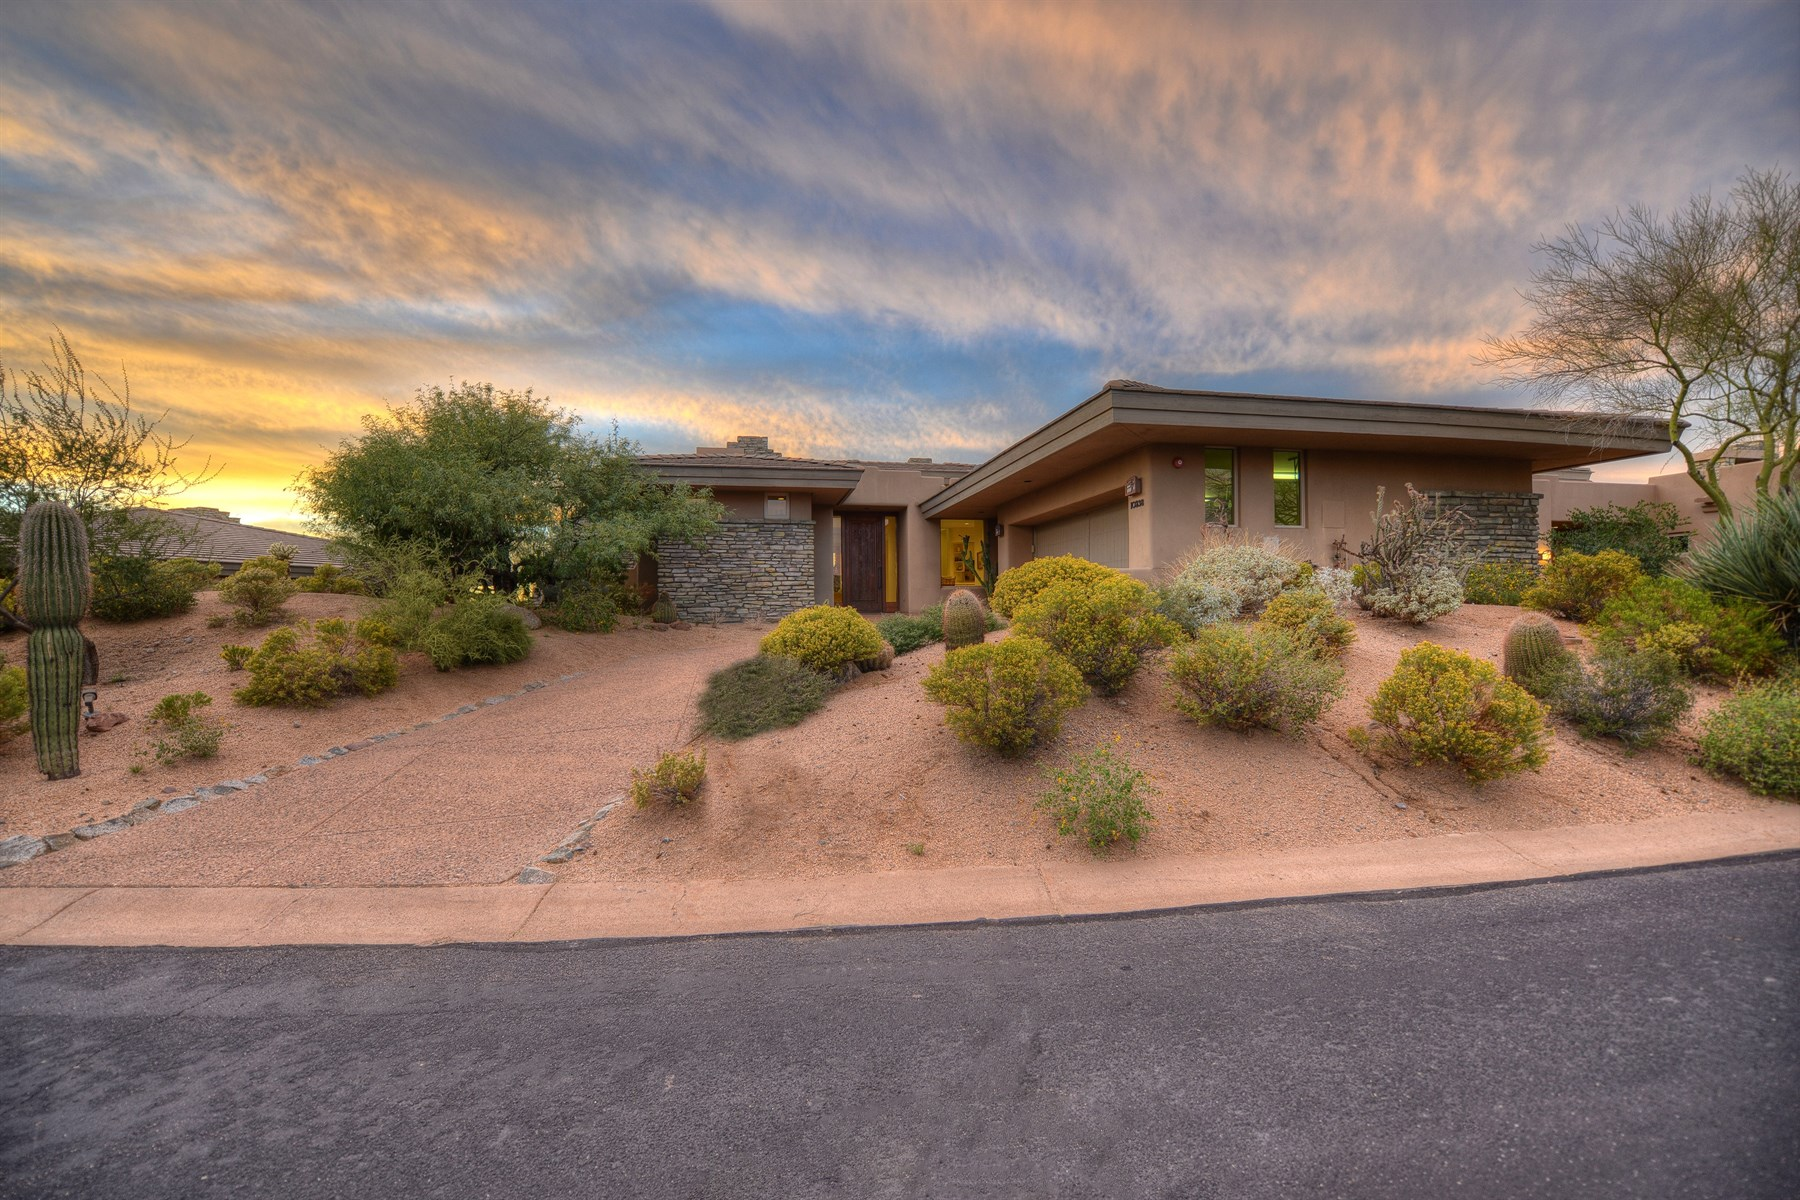 Maison unifamiliale pour l Vente à Furnished Turn-Key Patio Home With Timeless Views In Desert Mountain 10238 E Old Trail Rd Scottsdale, Arizona 85262 États-Unis